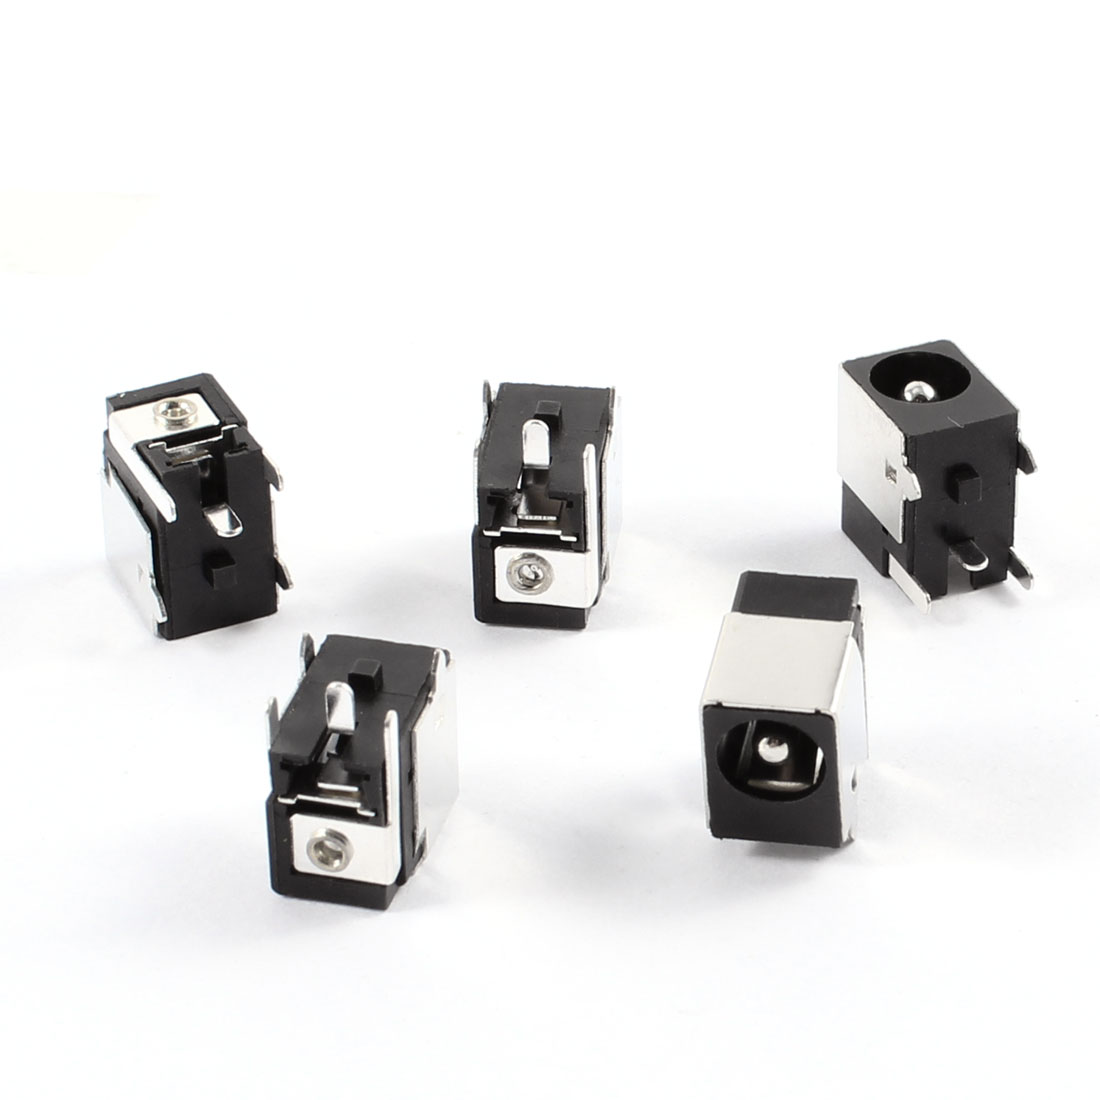 5 Pcs PJ001SC DC Power Jack Connector for Acer Aspire 1300 1301xv 1302 1304